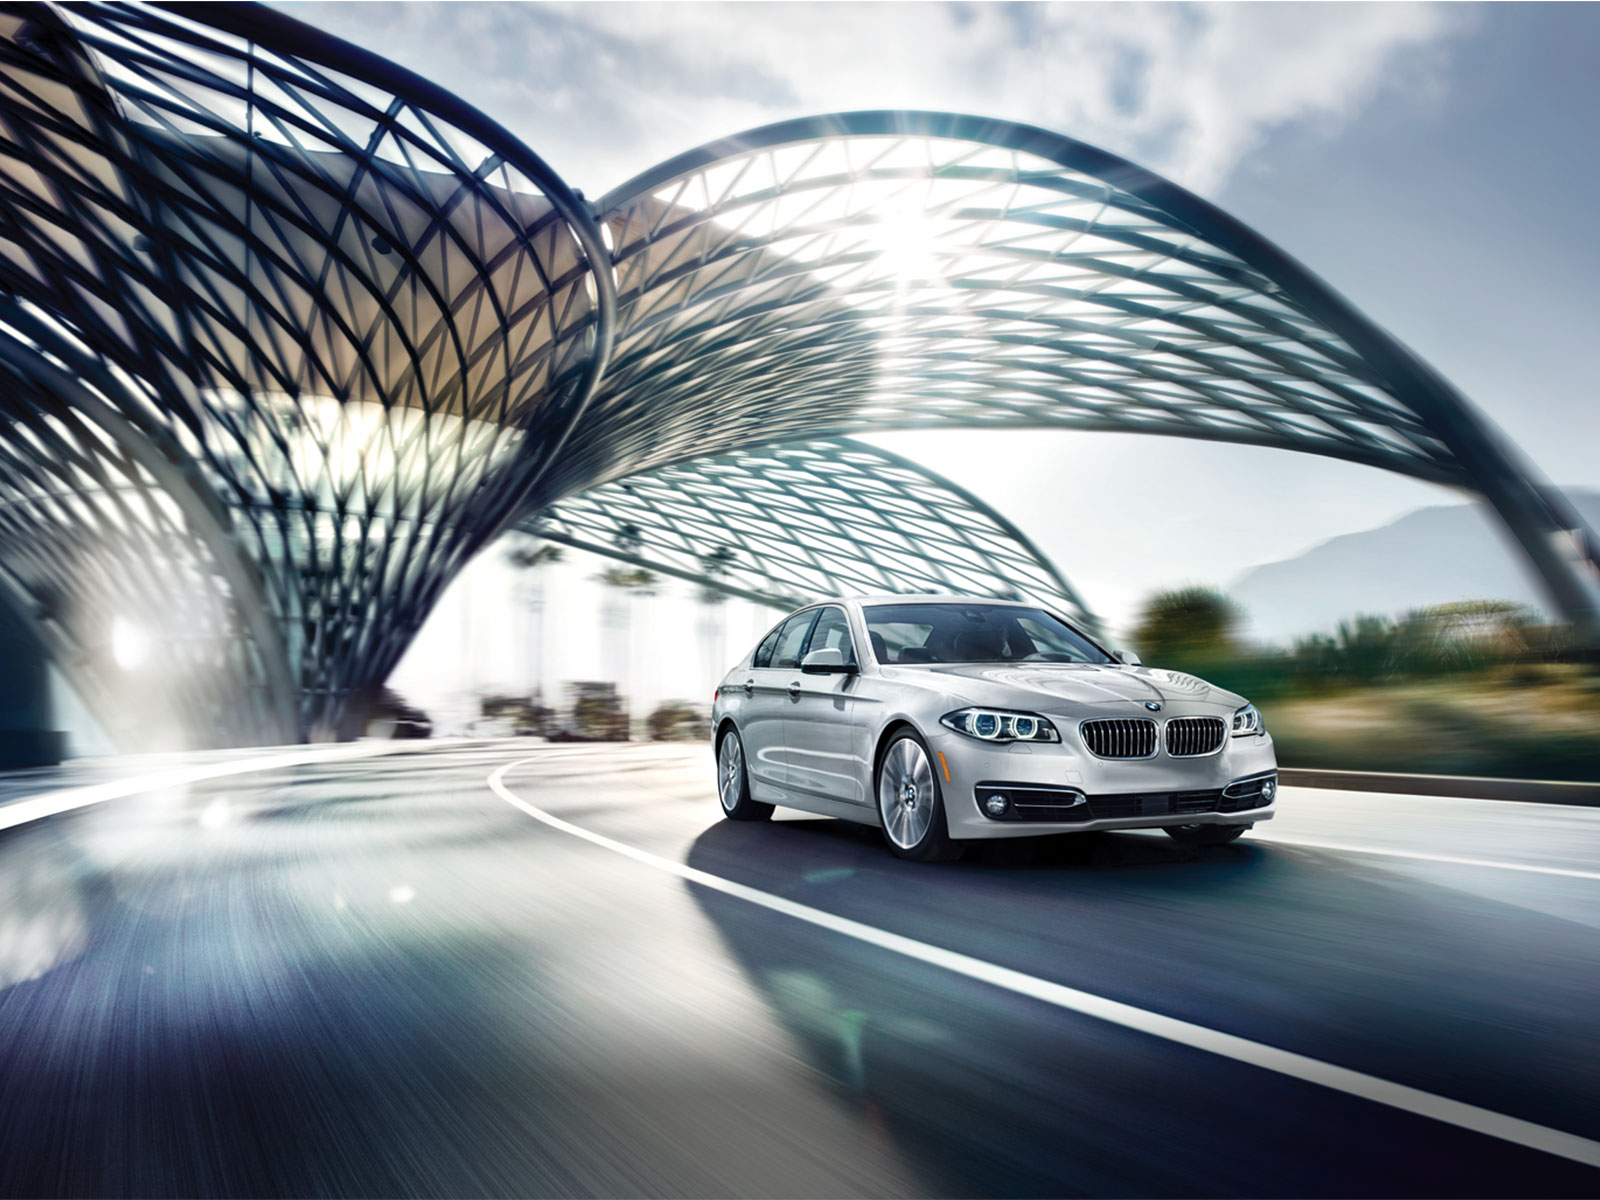 2016 BMW 535i xDrive Silver Exterior